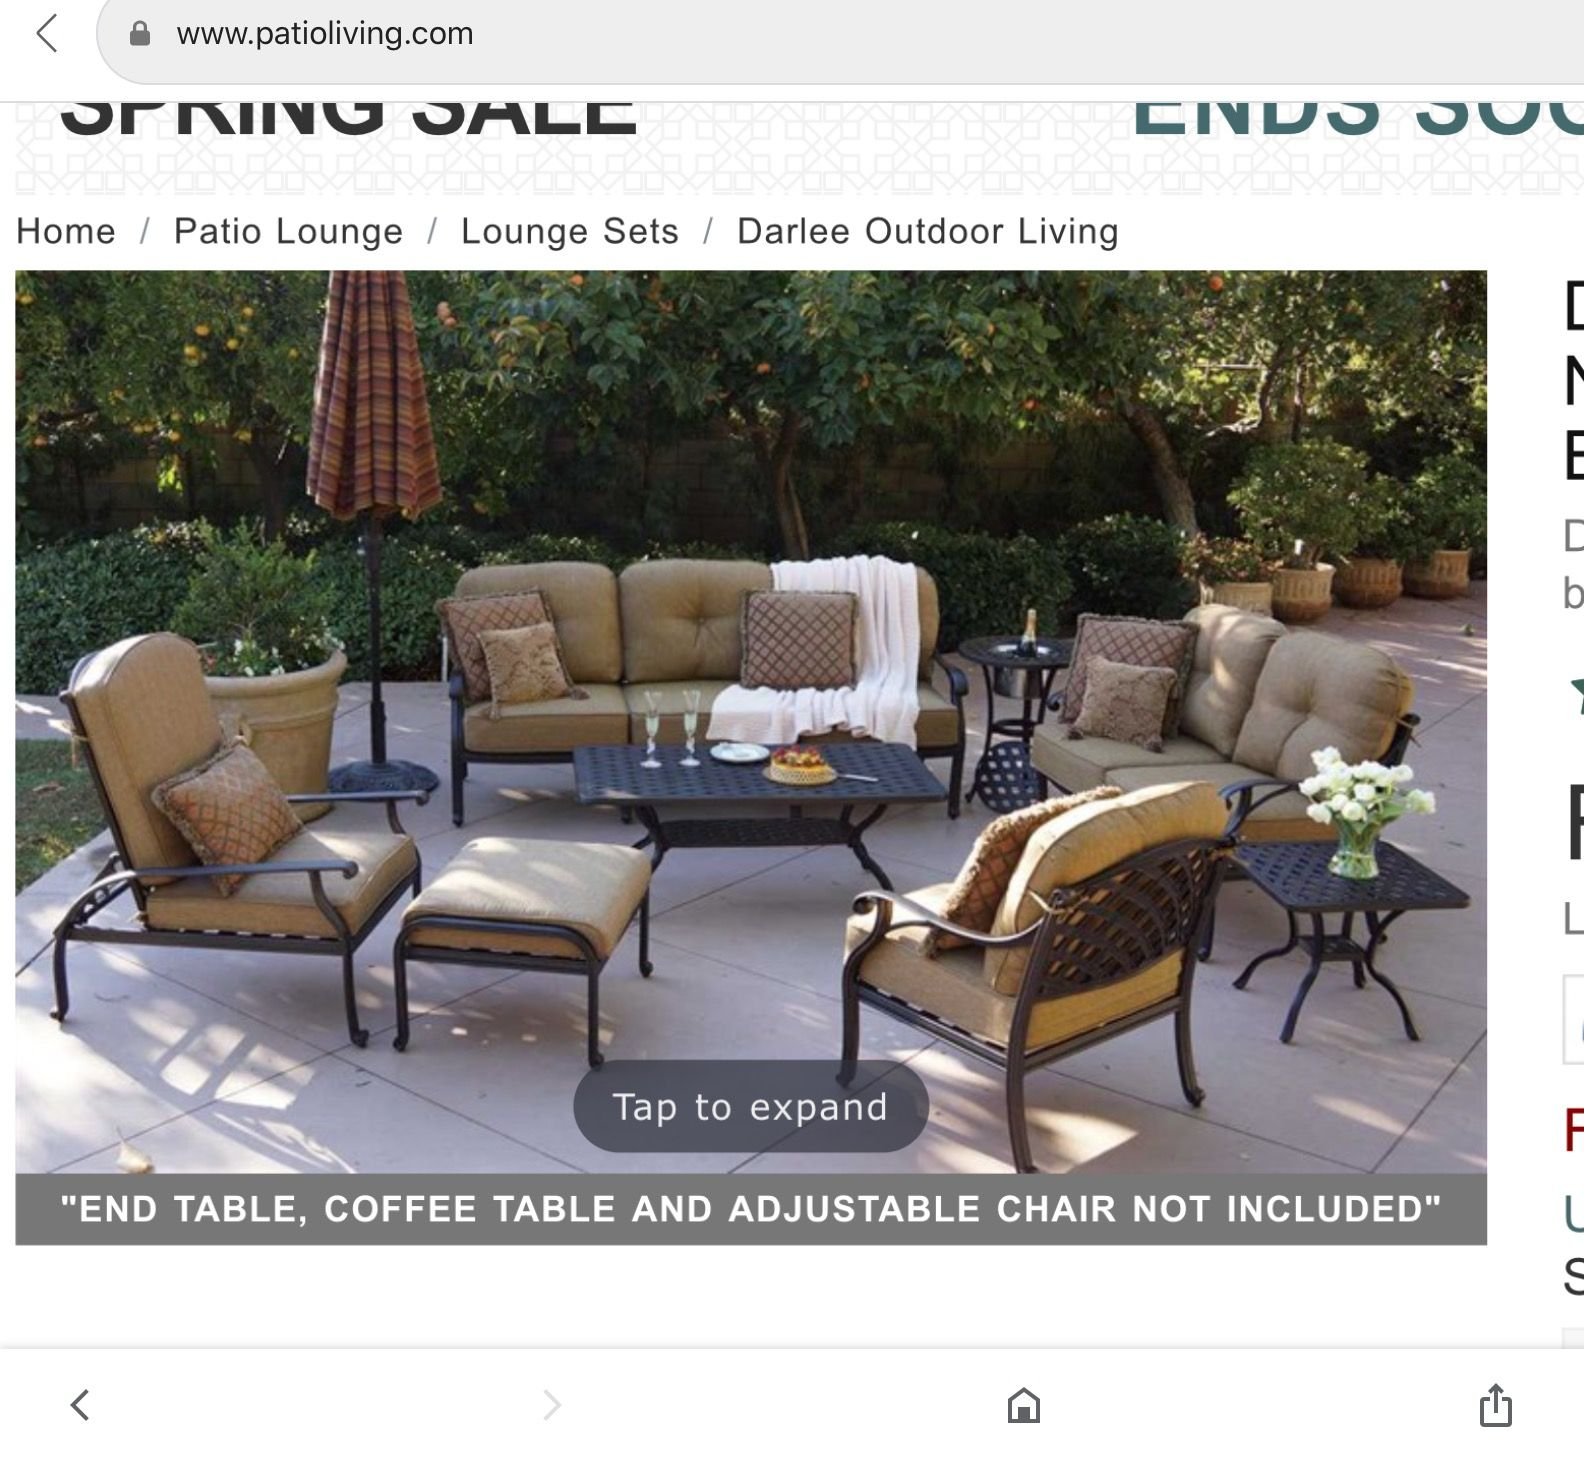 Pin on Patio furniture steel frames